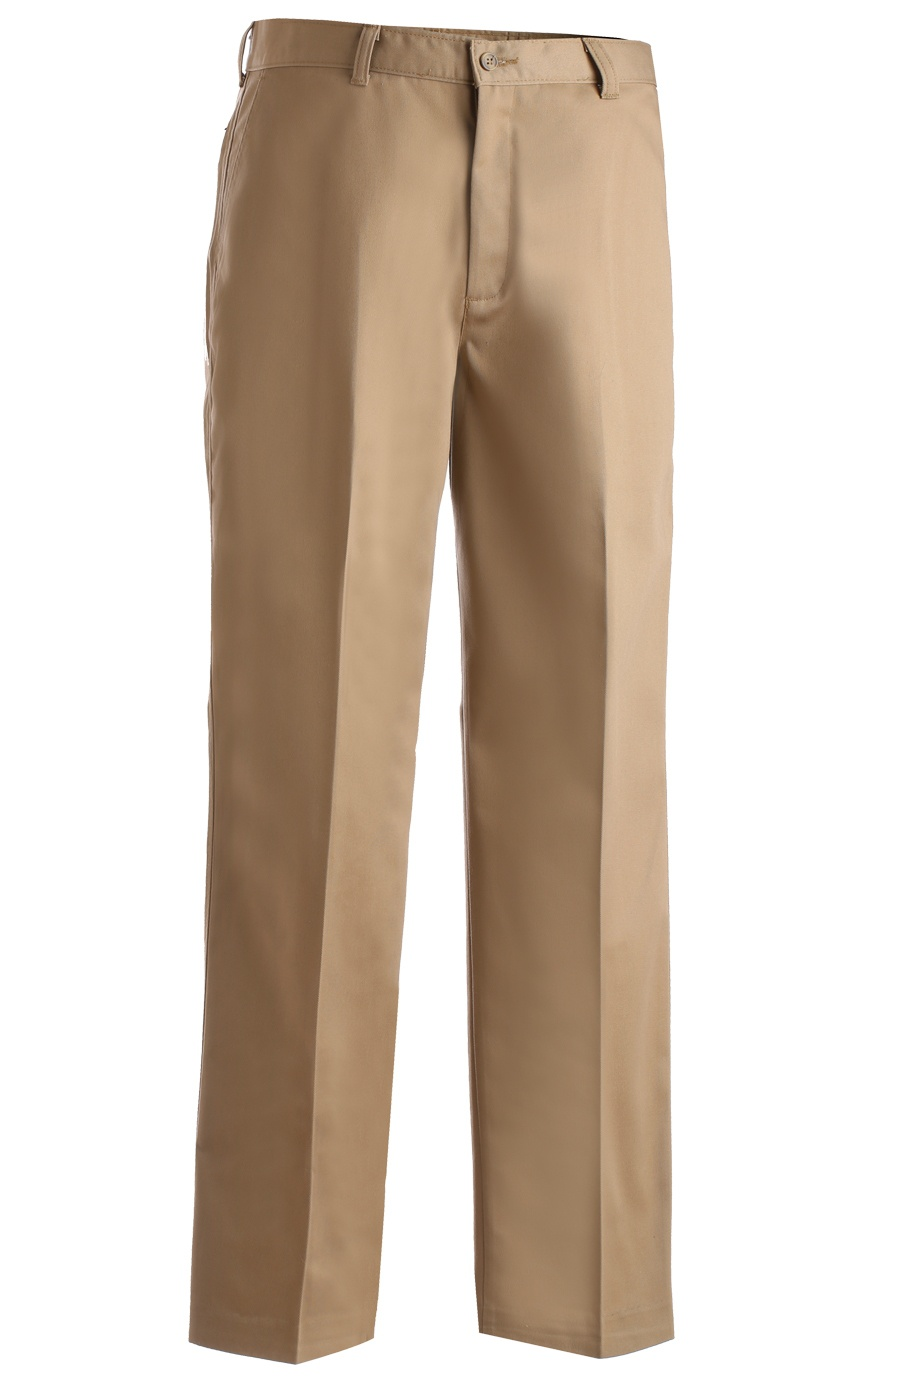 'Edwards 2570 Men's Blended Chino Flat Front Pant'